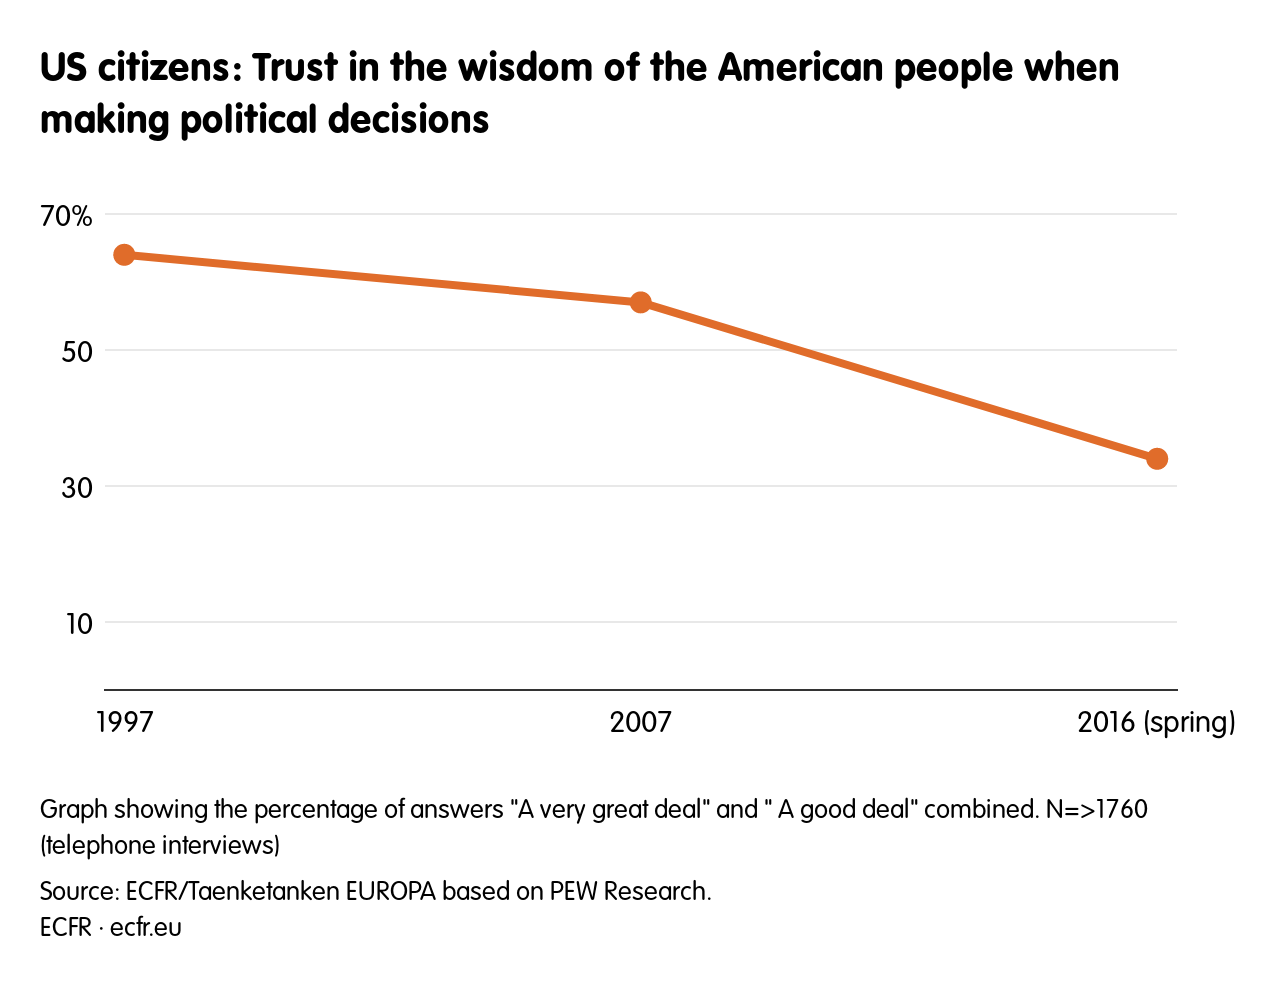 US citizens: Trust in the wisdom of the American people when making political decisions